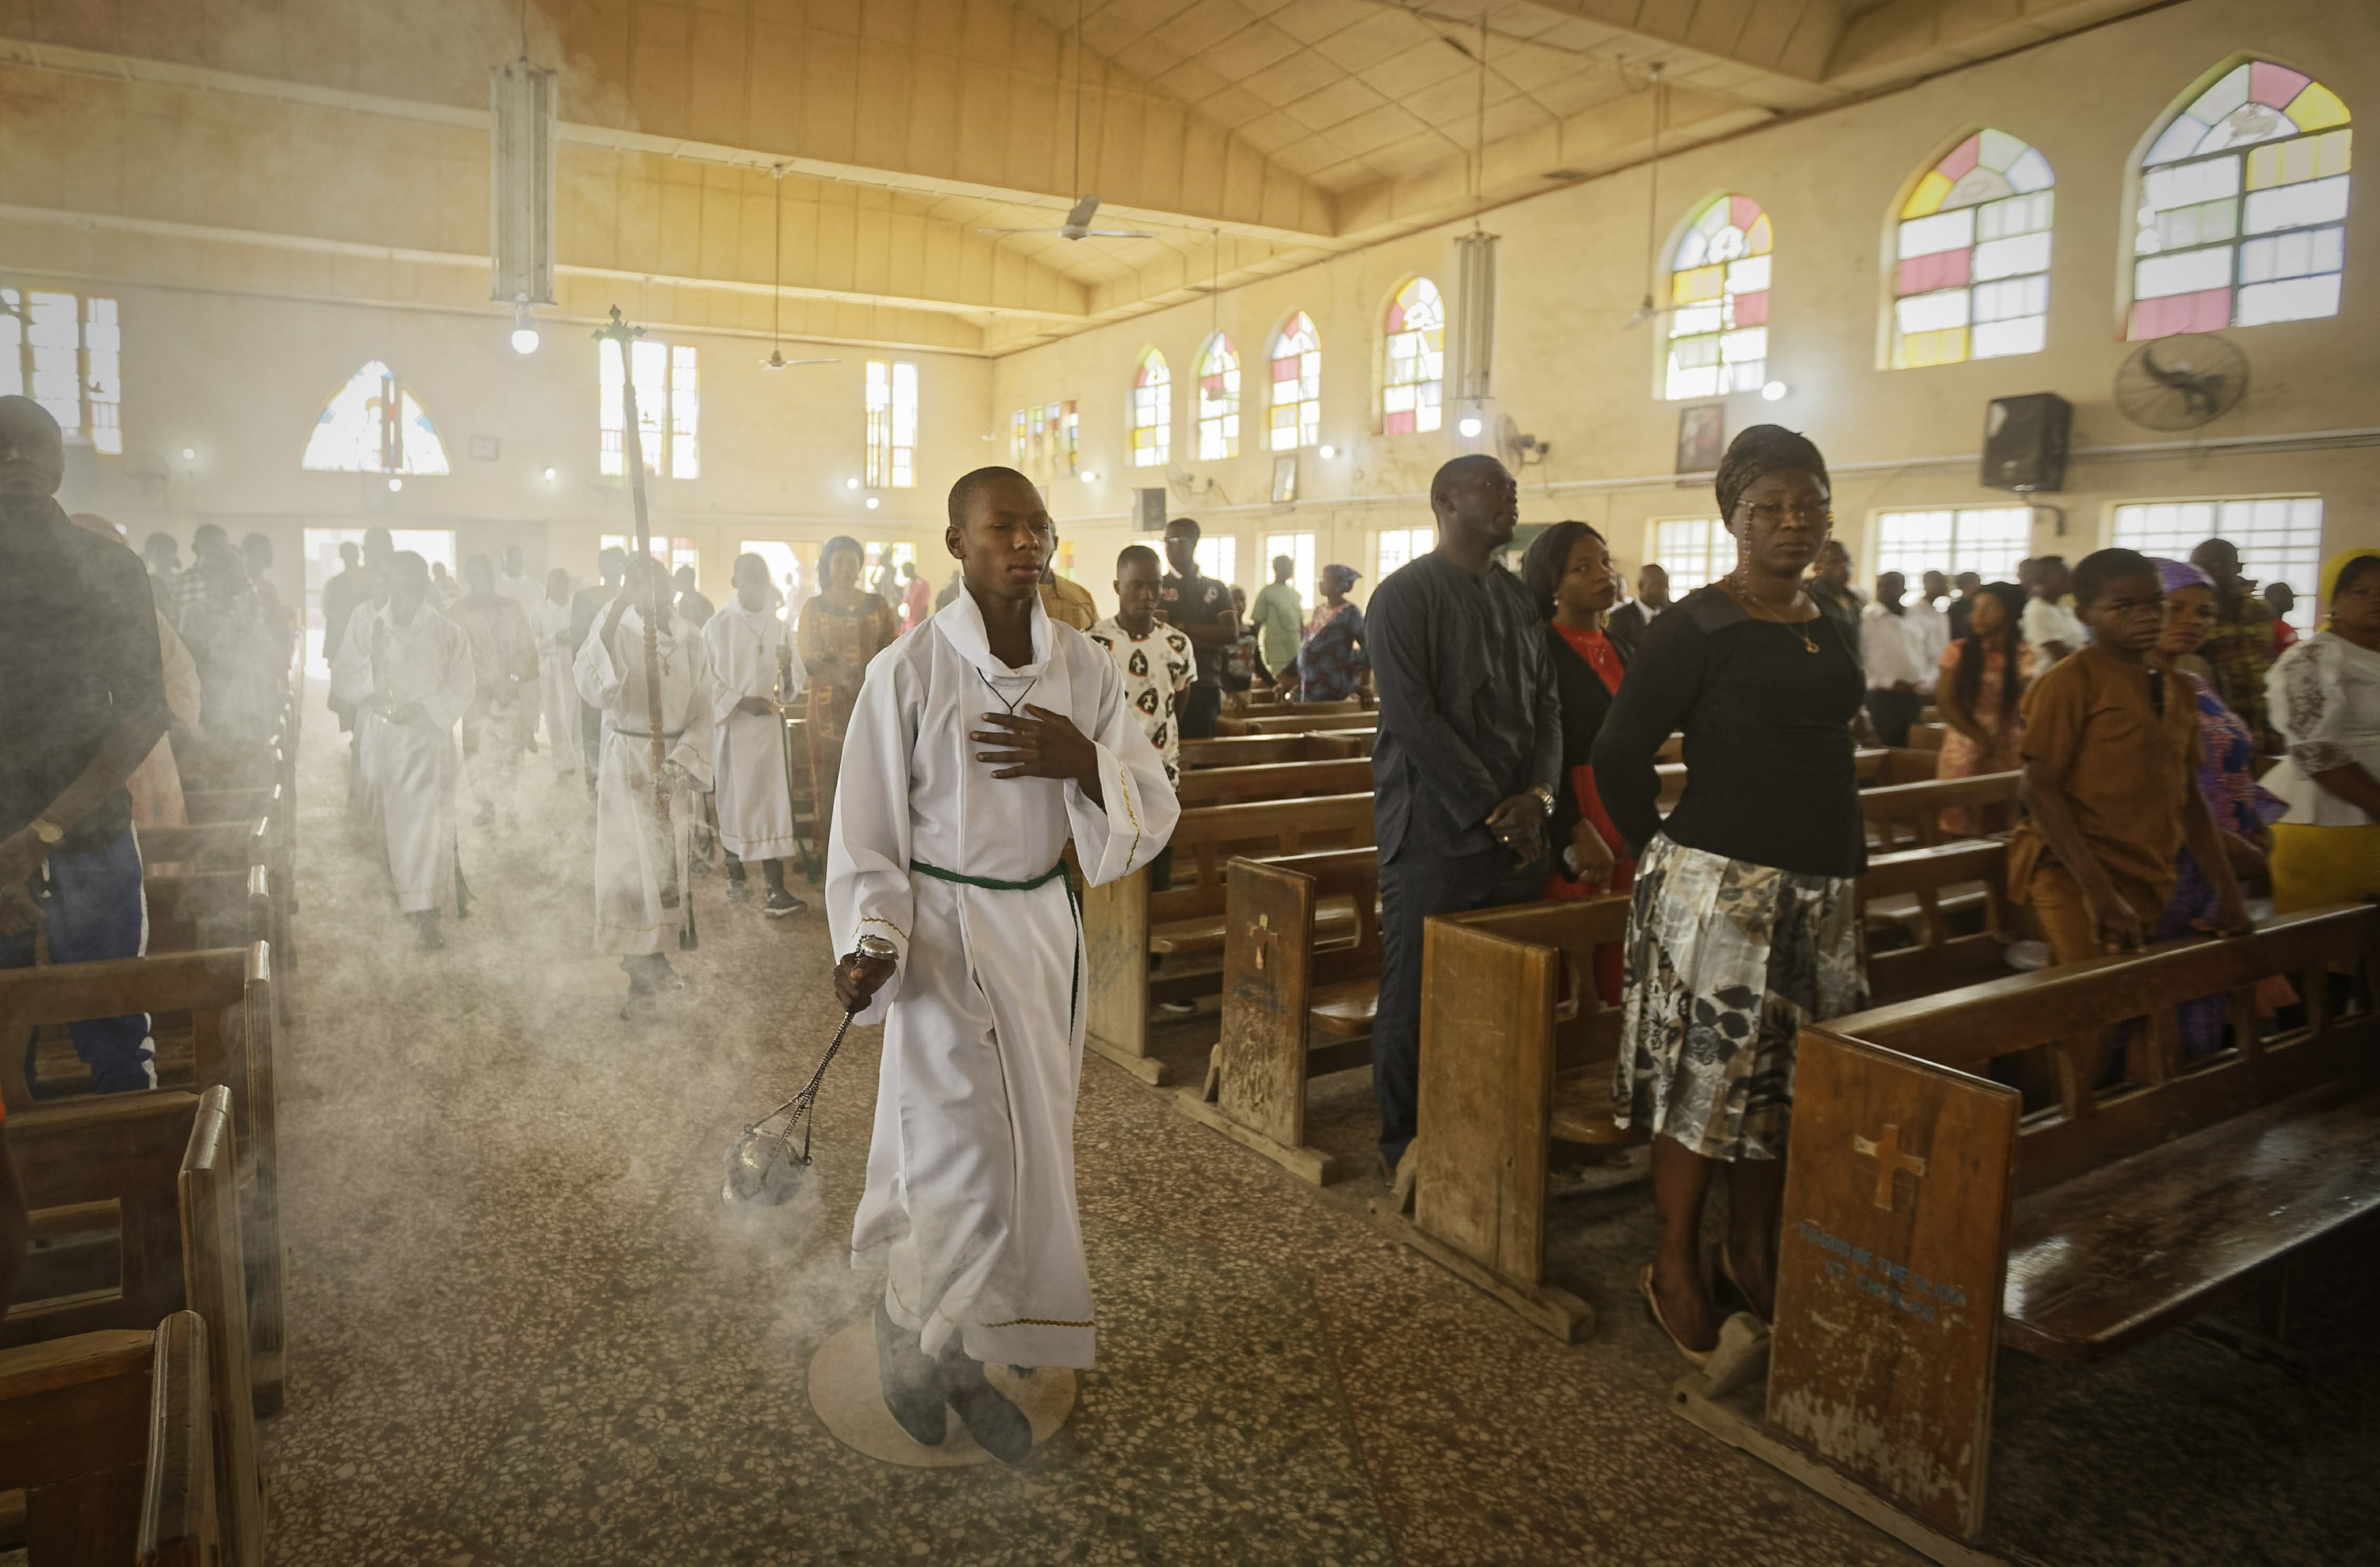 Nigerian Christian Lawyer in Hiding After Receiving Death Threats for Defending Victims of Fulani Attacks